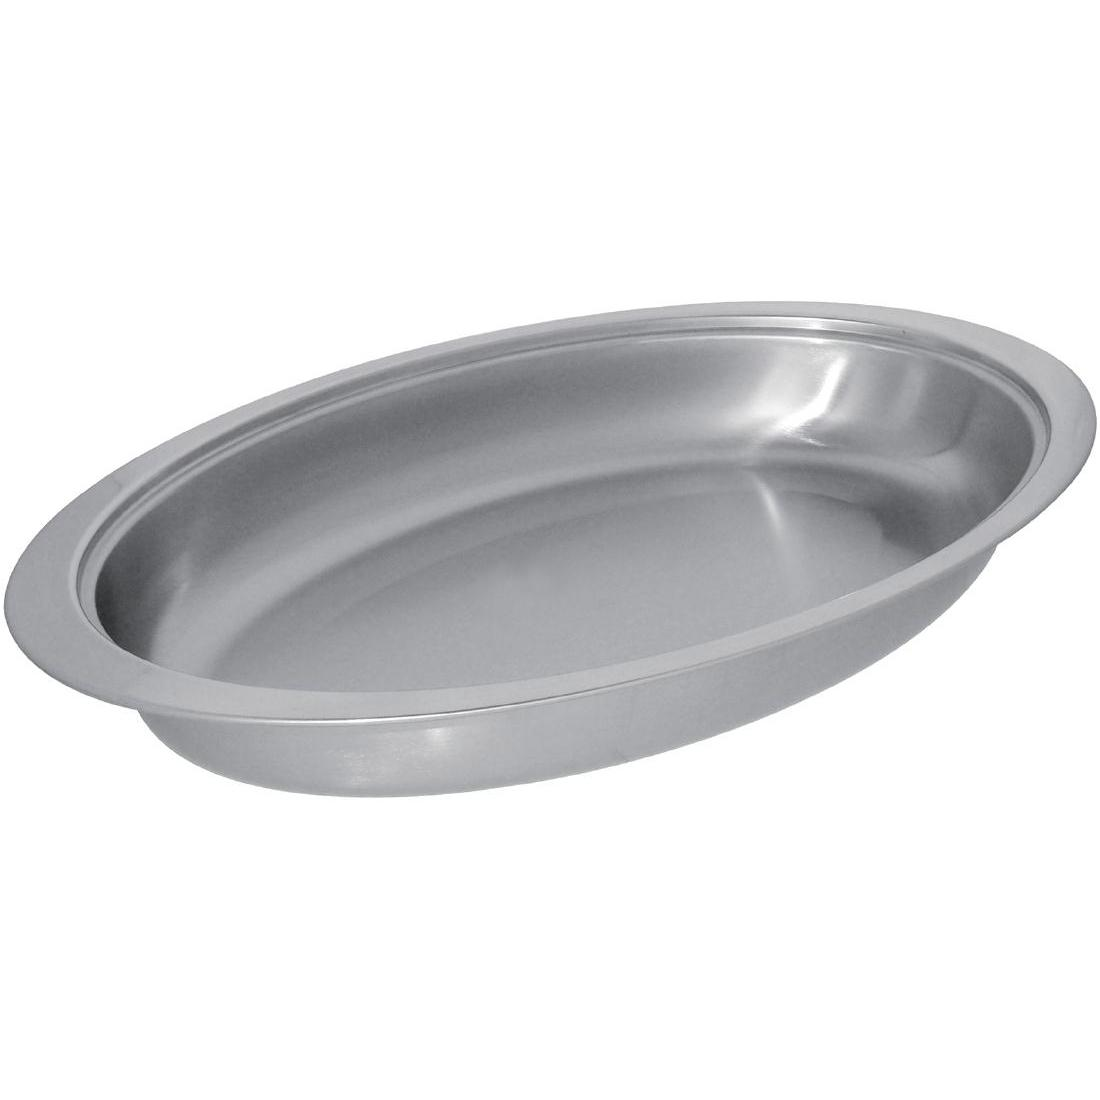 CB727 - Spare Food Pan for K408 - CB727